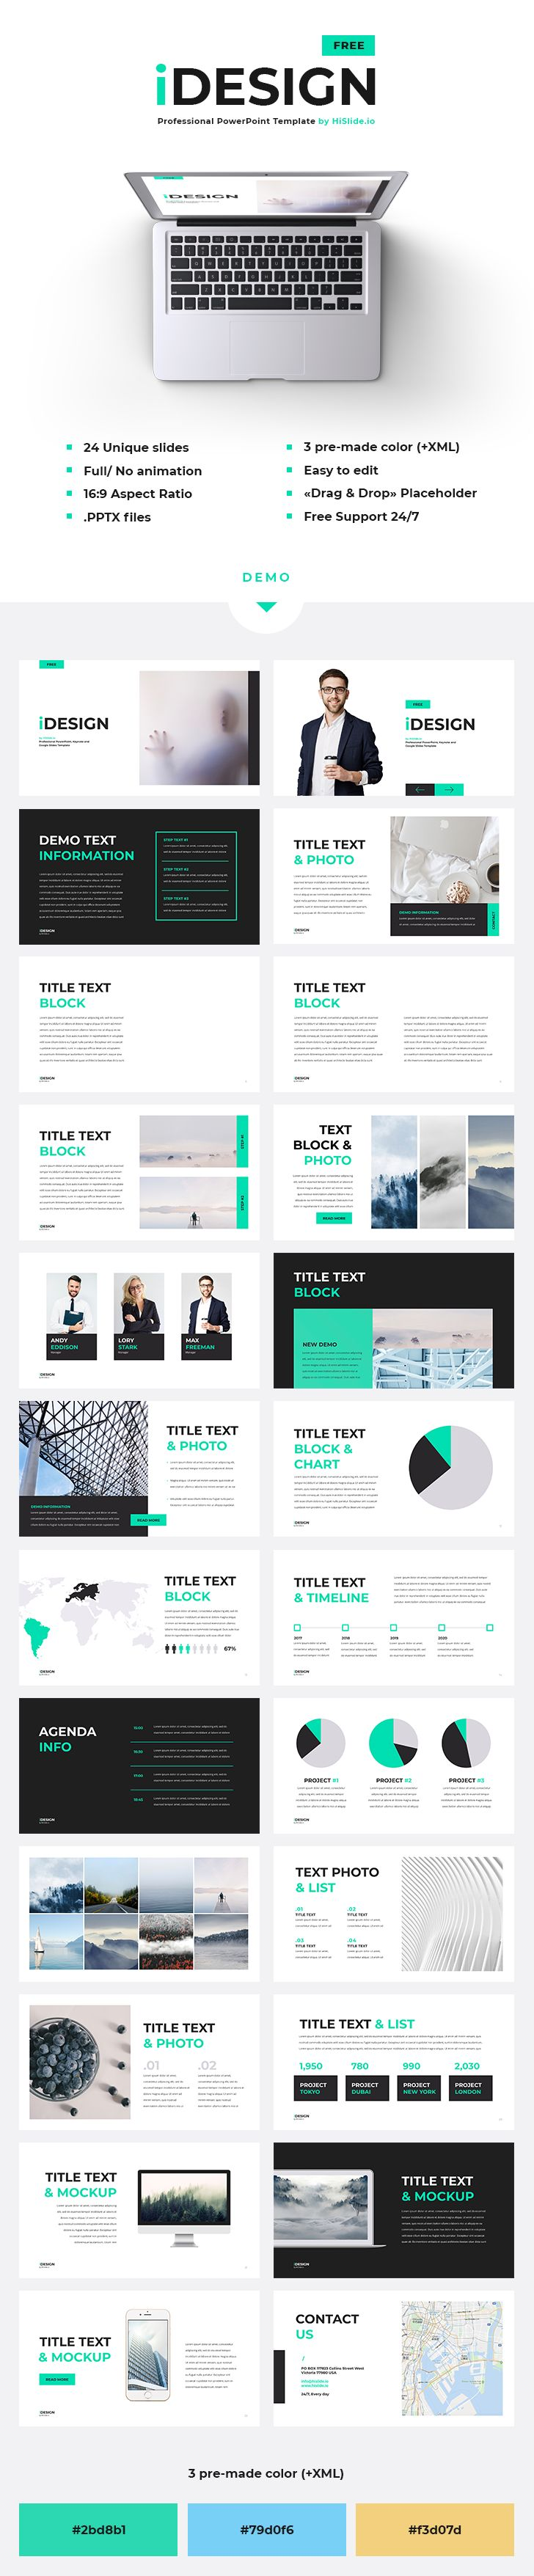 7 best free powerpoint templates on behance images on pinterest idesign free powerpoint template 24 unique slides 3 pre made color xml files full no animation easy to edit drag drop placeholder toneelgroepblik Images